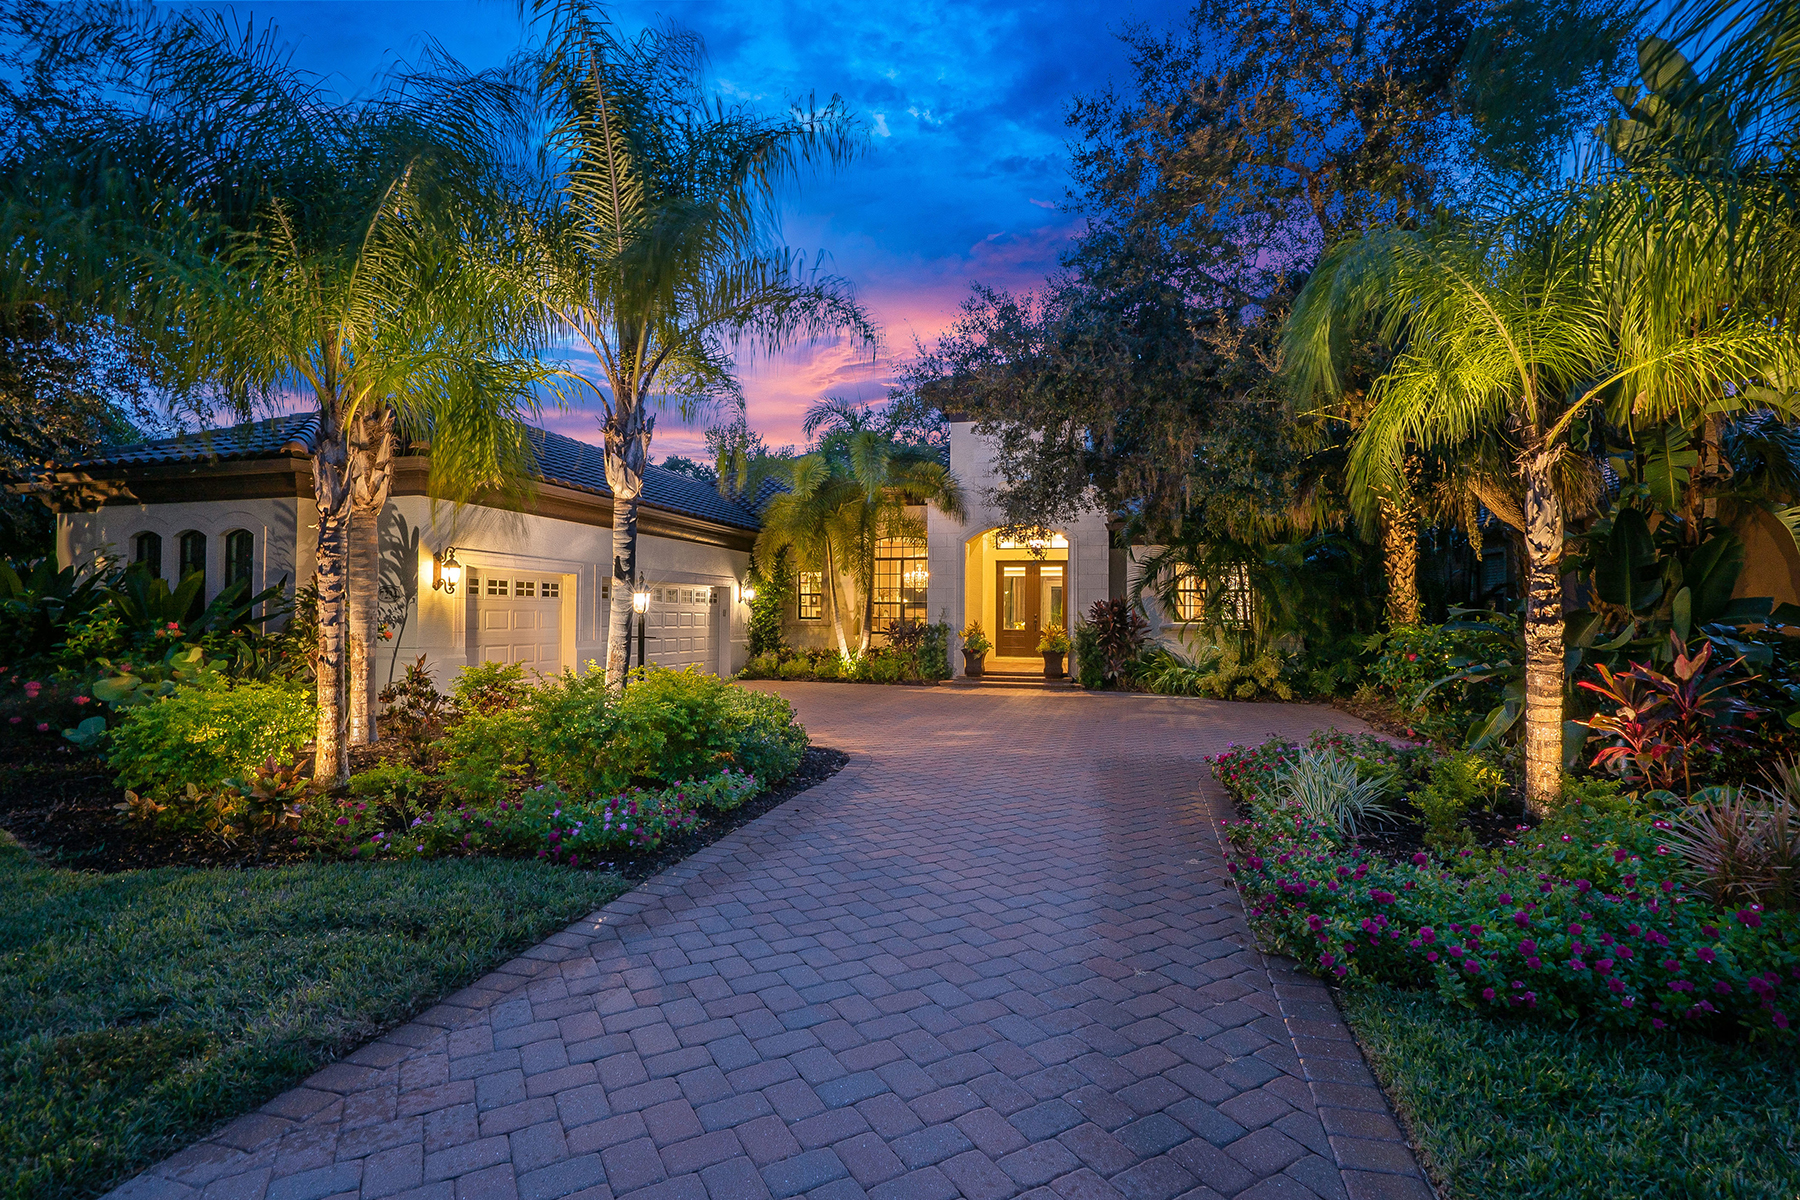 Single Family Homes for Sale at LAKEWOOD RANCH COUNTRY CLUB 7234 Greystone St, Lakewood Ranch, Florida 34202 United States